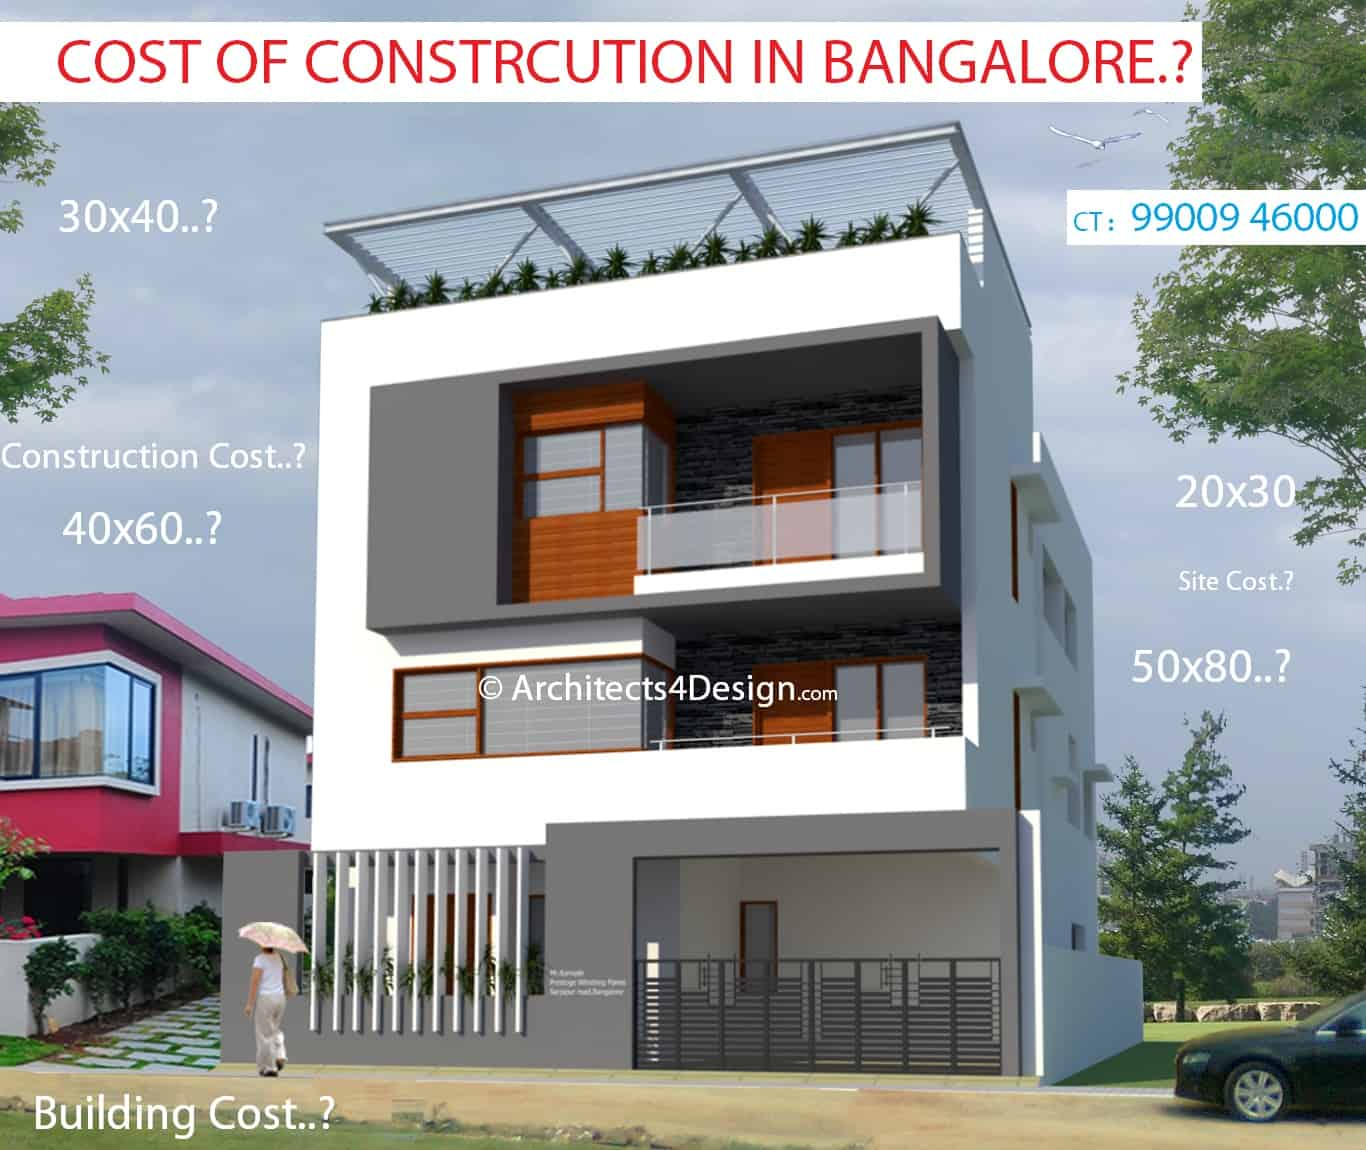 construction cost in bangalore know cost of construction in rh architects4design com